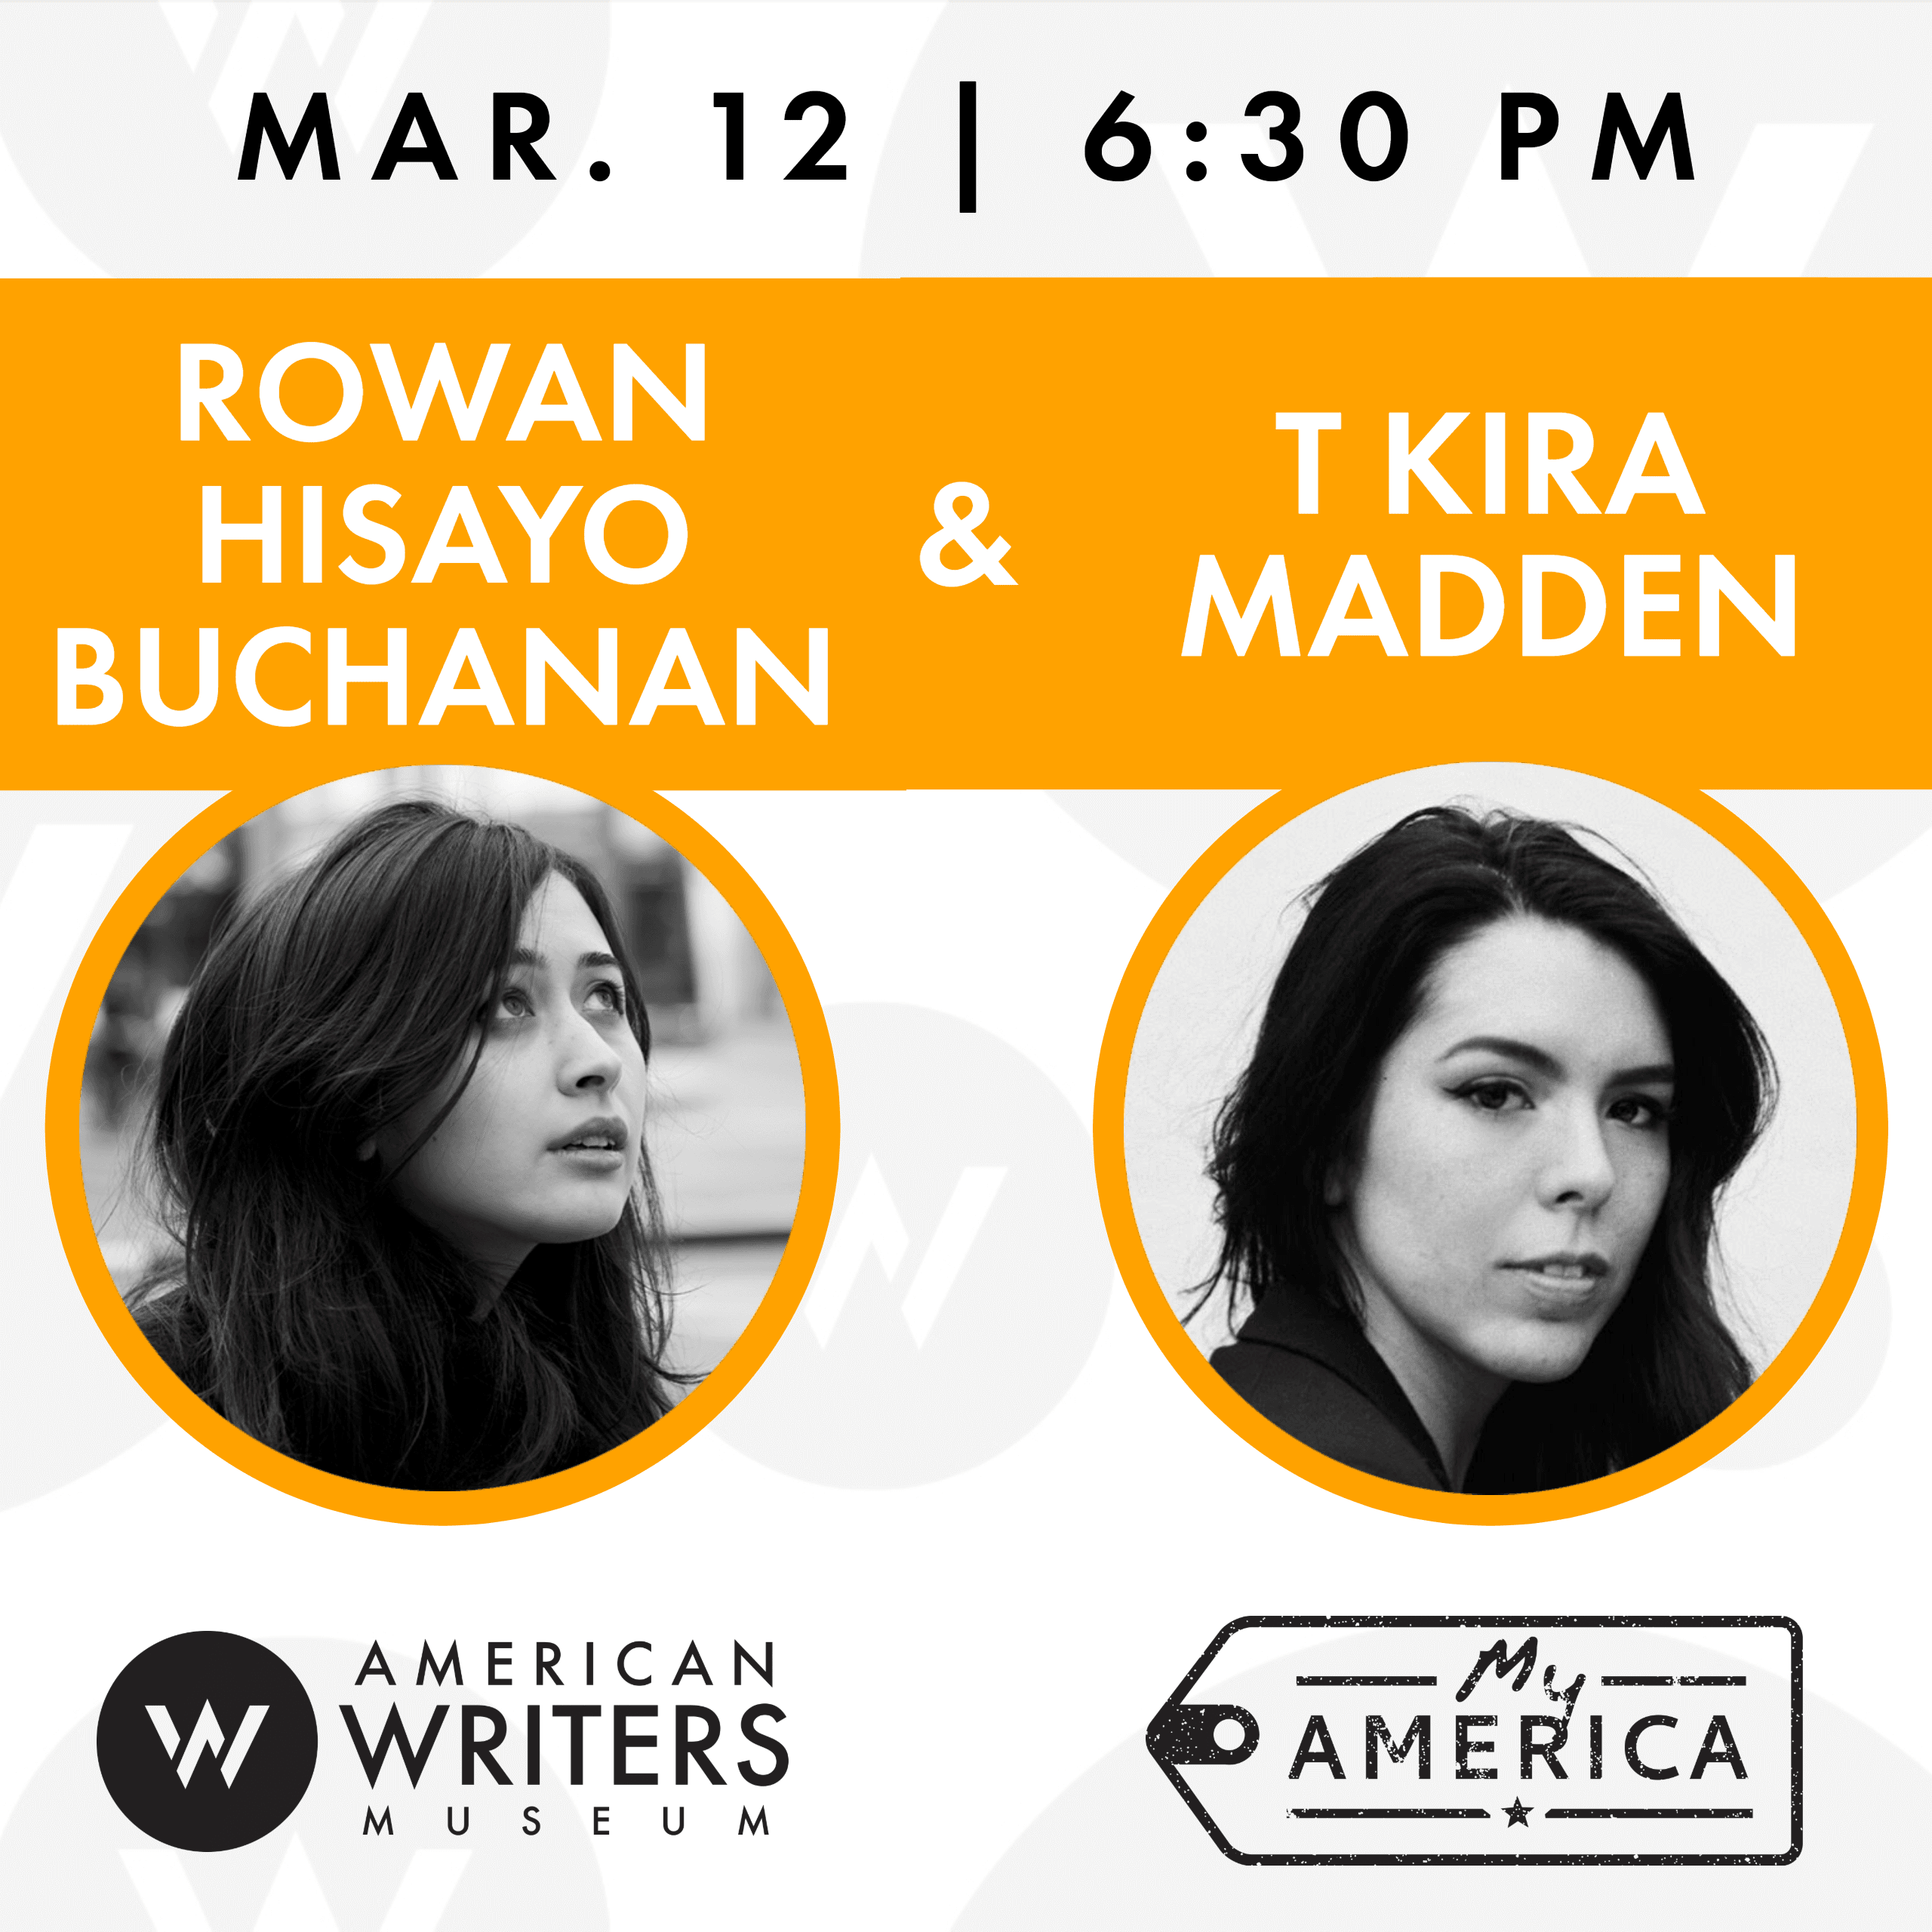 Rowan Hisayo Buchanan and T Kira Madden at the American Writers Museum on March 12, 2020